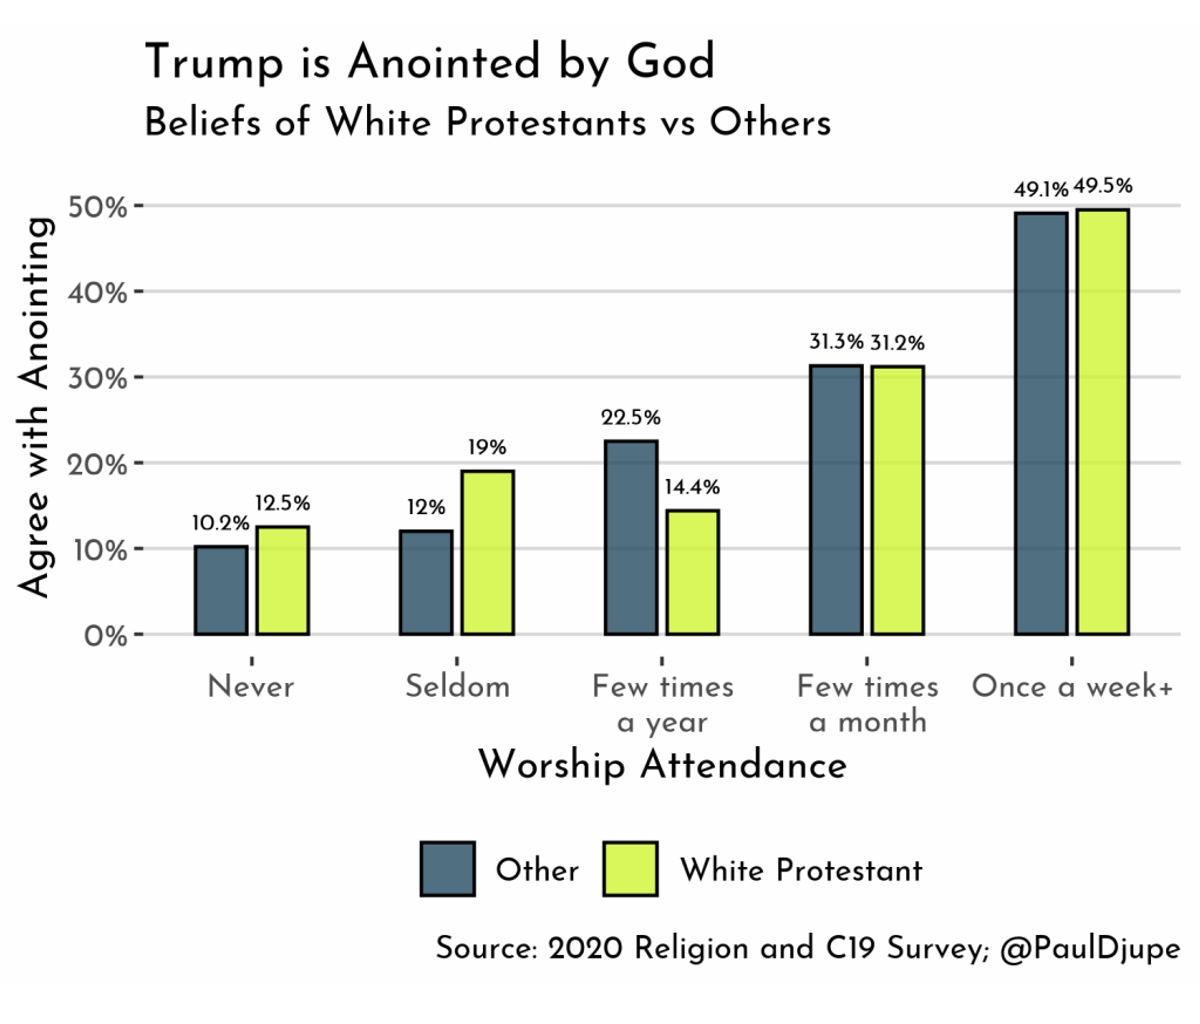 Why white and non-white consider Trump annointed one from God